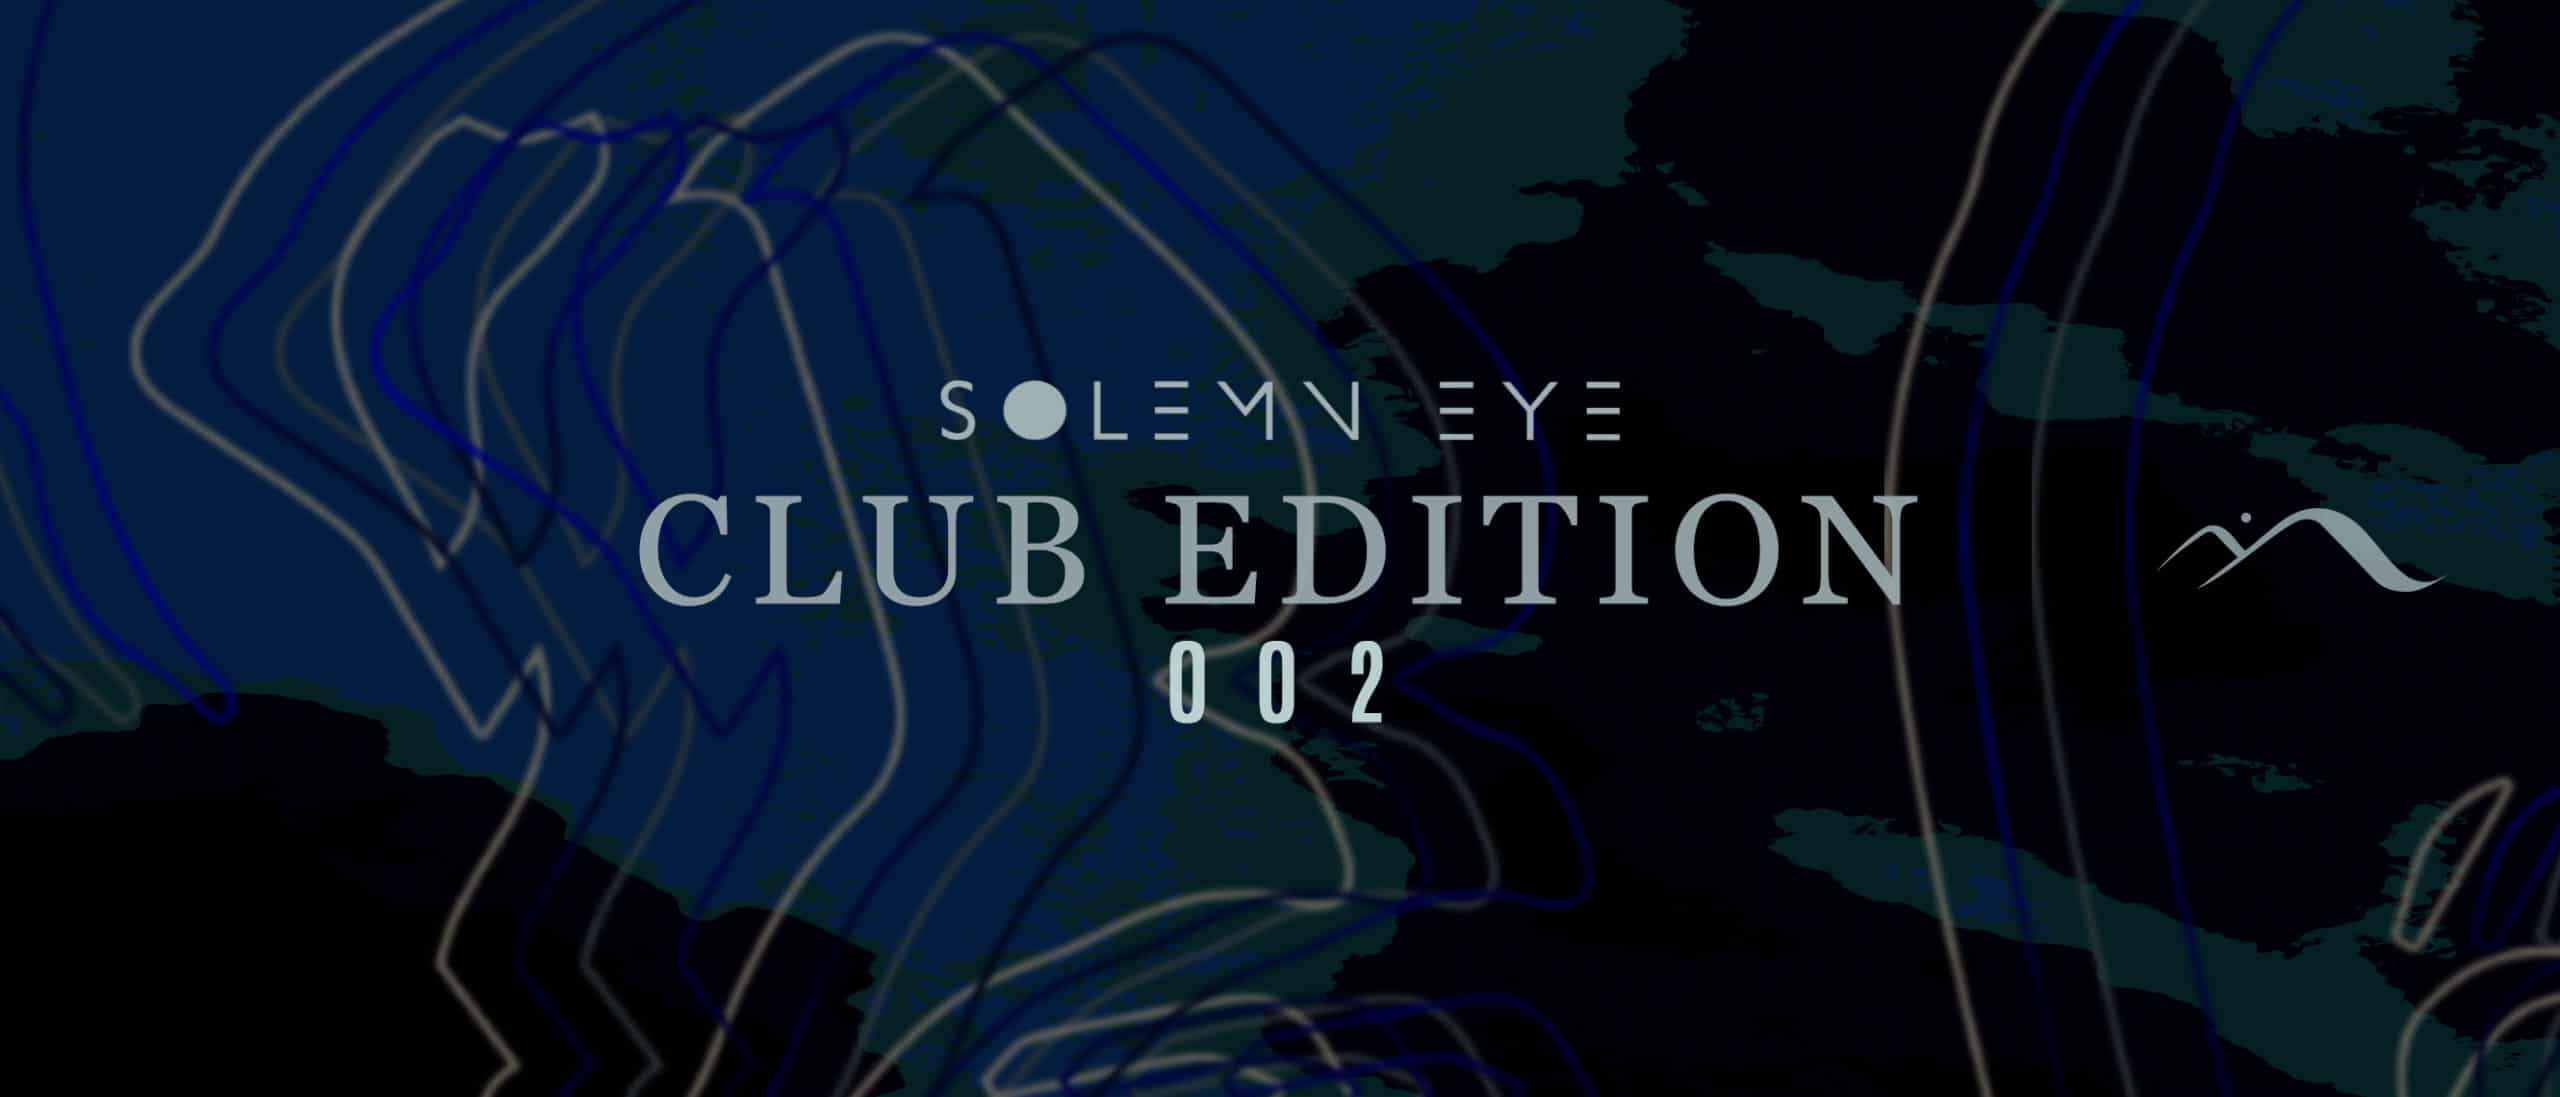 SH004 - Solemn eye Club edittion 002